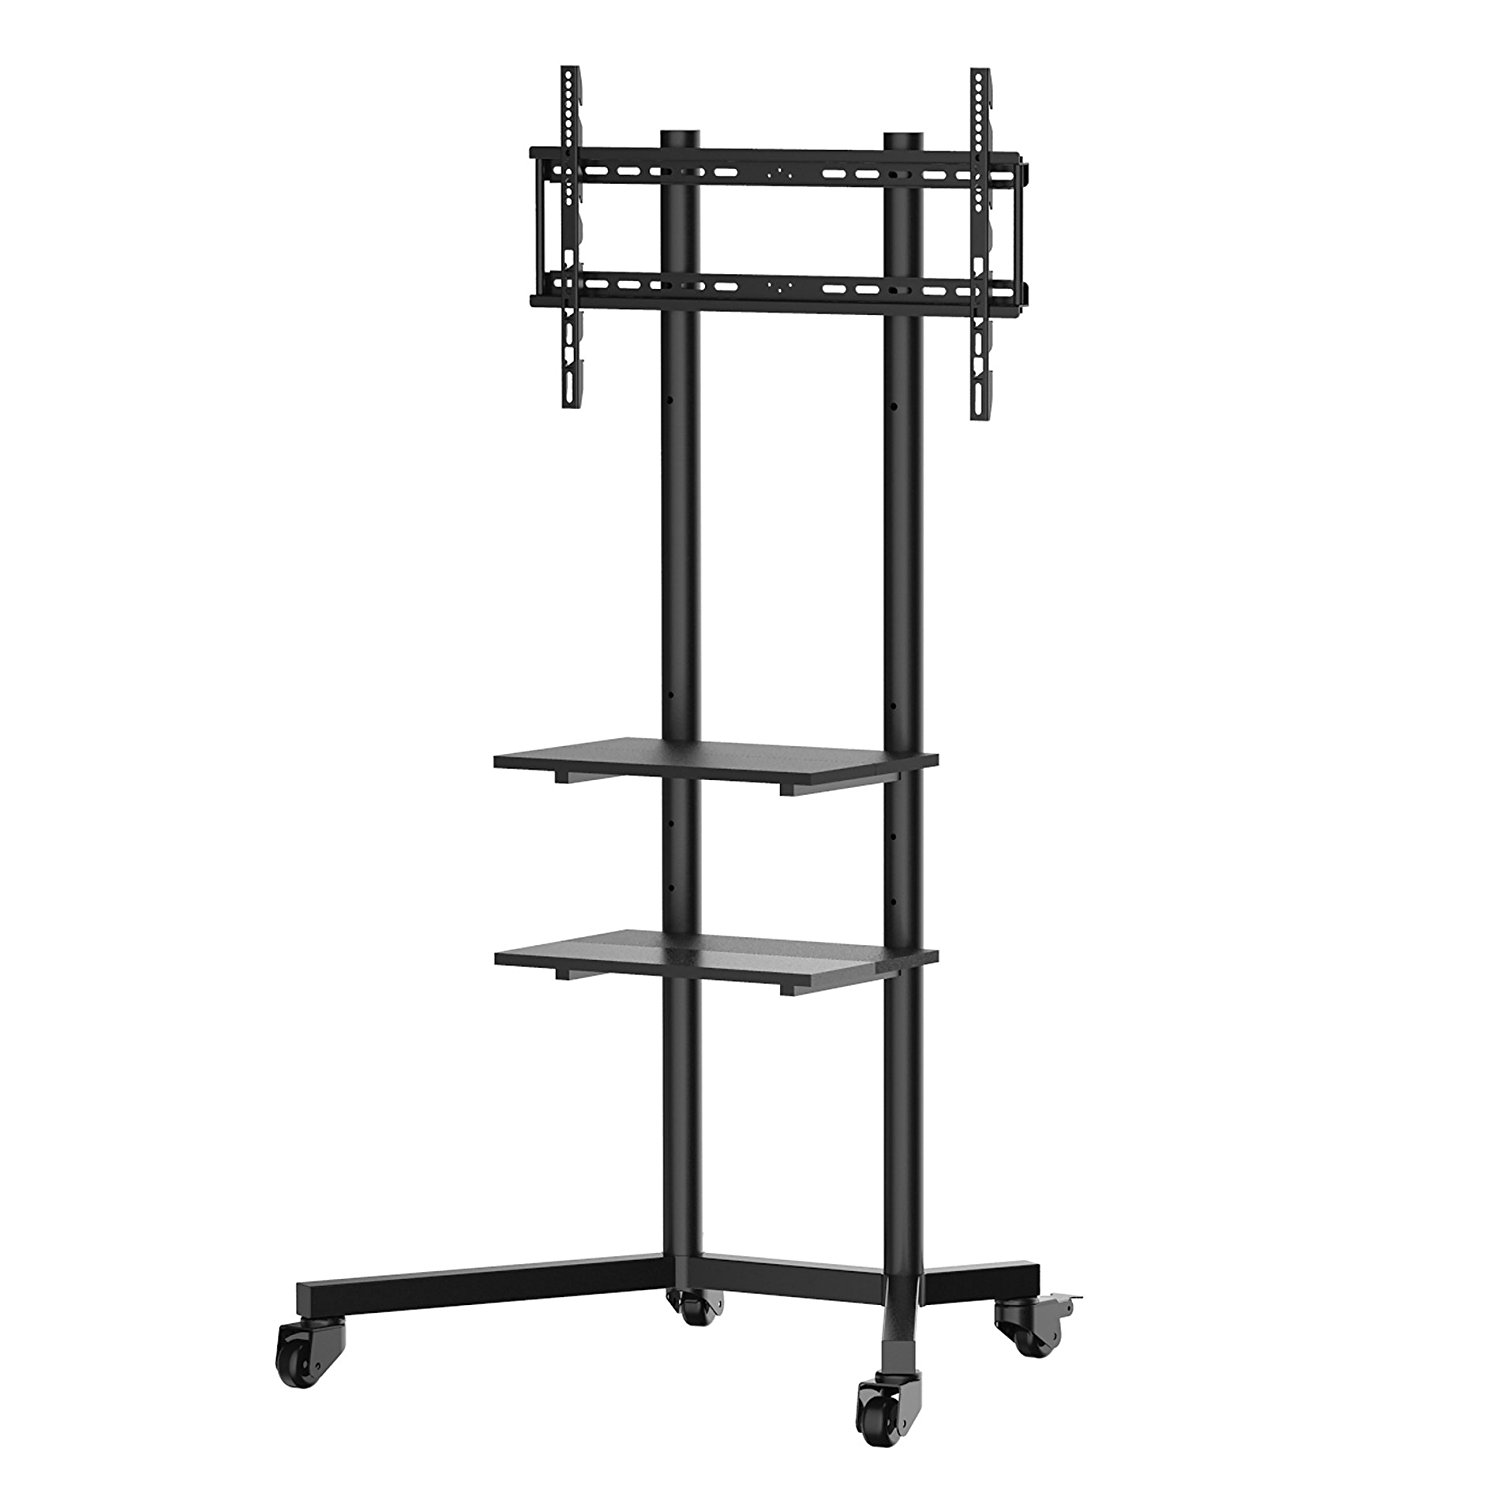 MMT Mobile TV Cart Trolley Floor Stand on wheels with TV Mounting Bracket 2 Shelves Castors For 32-65 Inch LCD, LED Plasma Screens Up To 50Kg